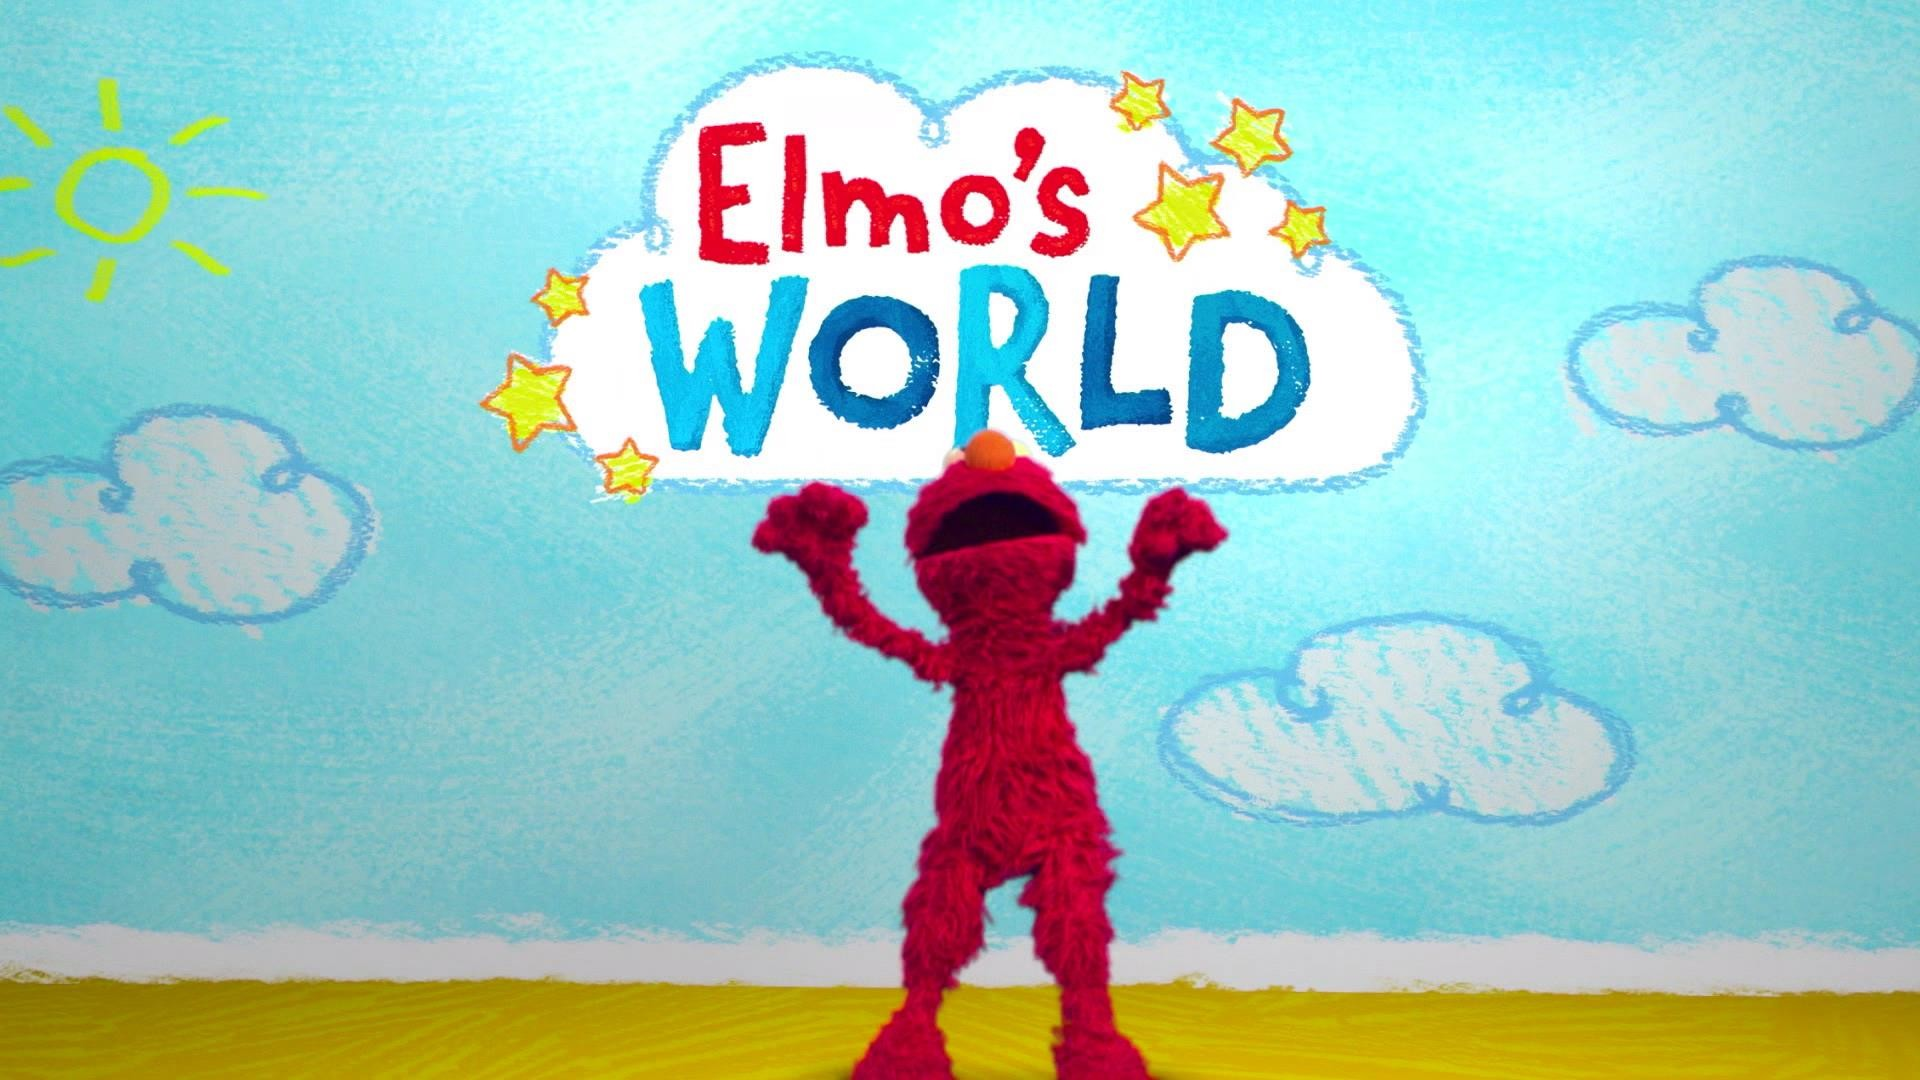 1920x1080 'Elmo's World': Get a sneak peek at the new season on 'Sesame Street' -  TODAY.com